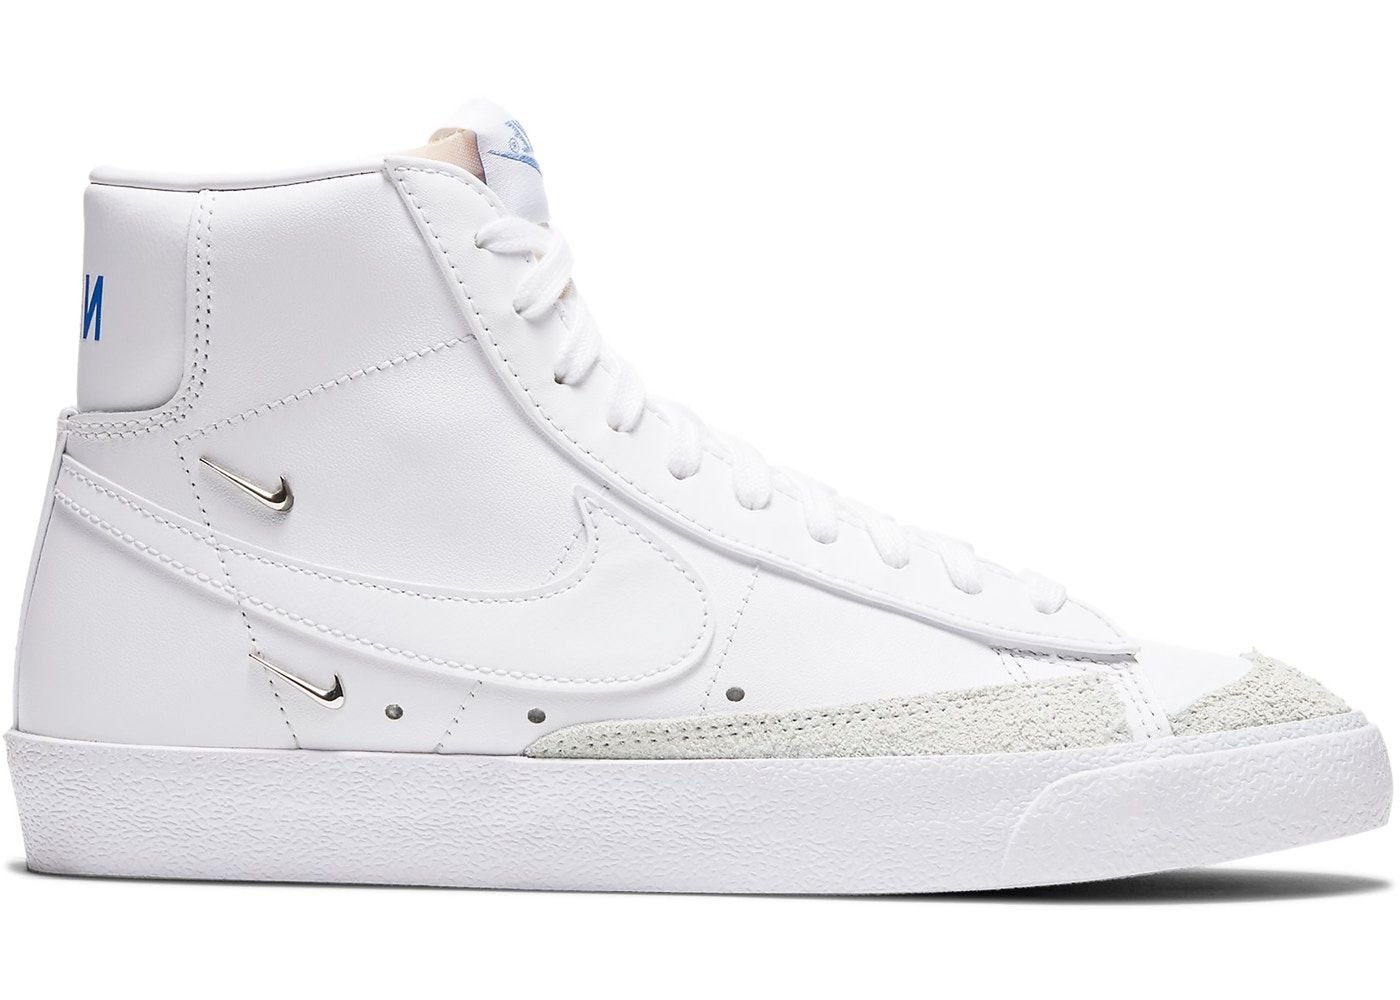 Check Out The Nike Blazer Mid 77 Lx White Available On Stockx